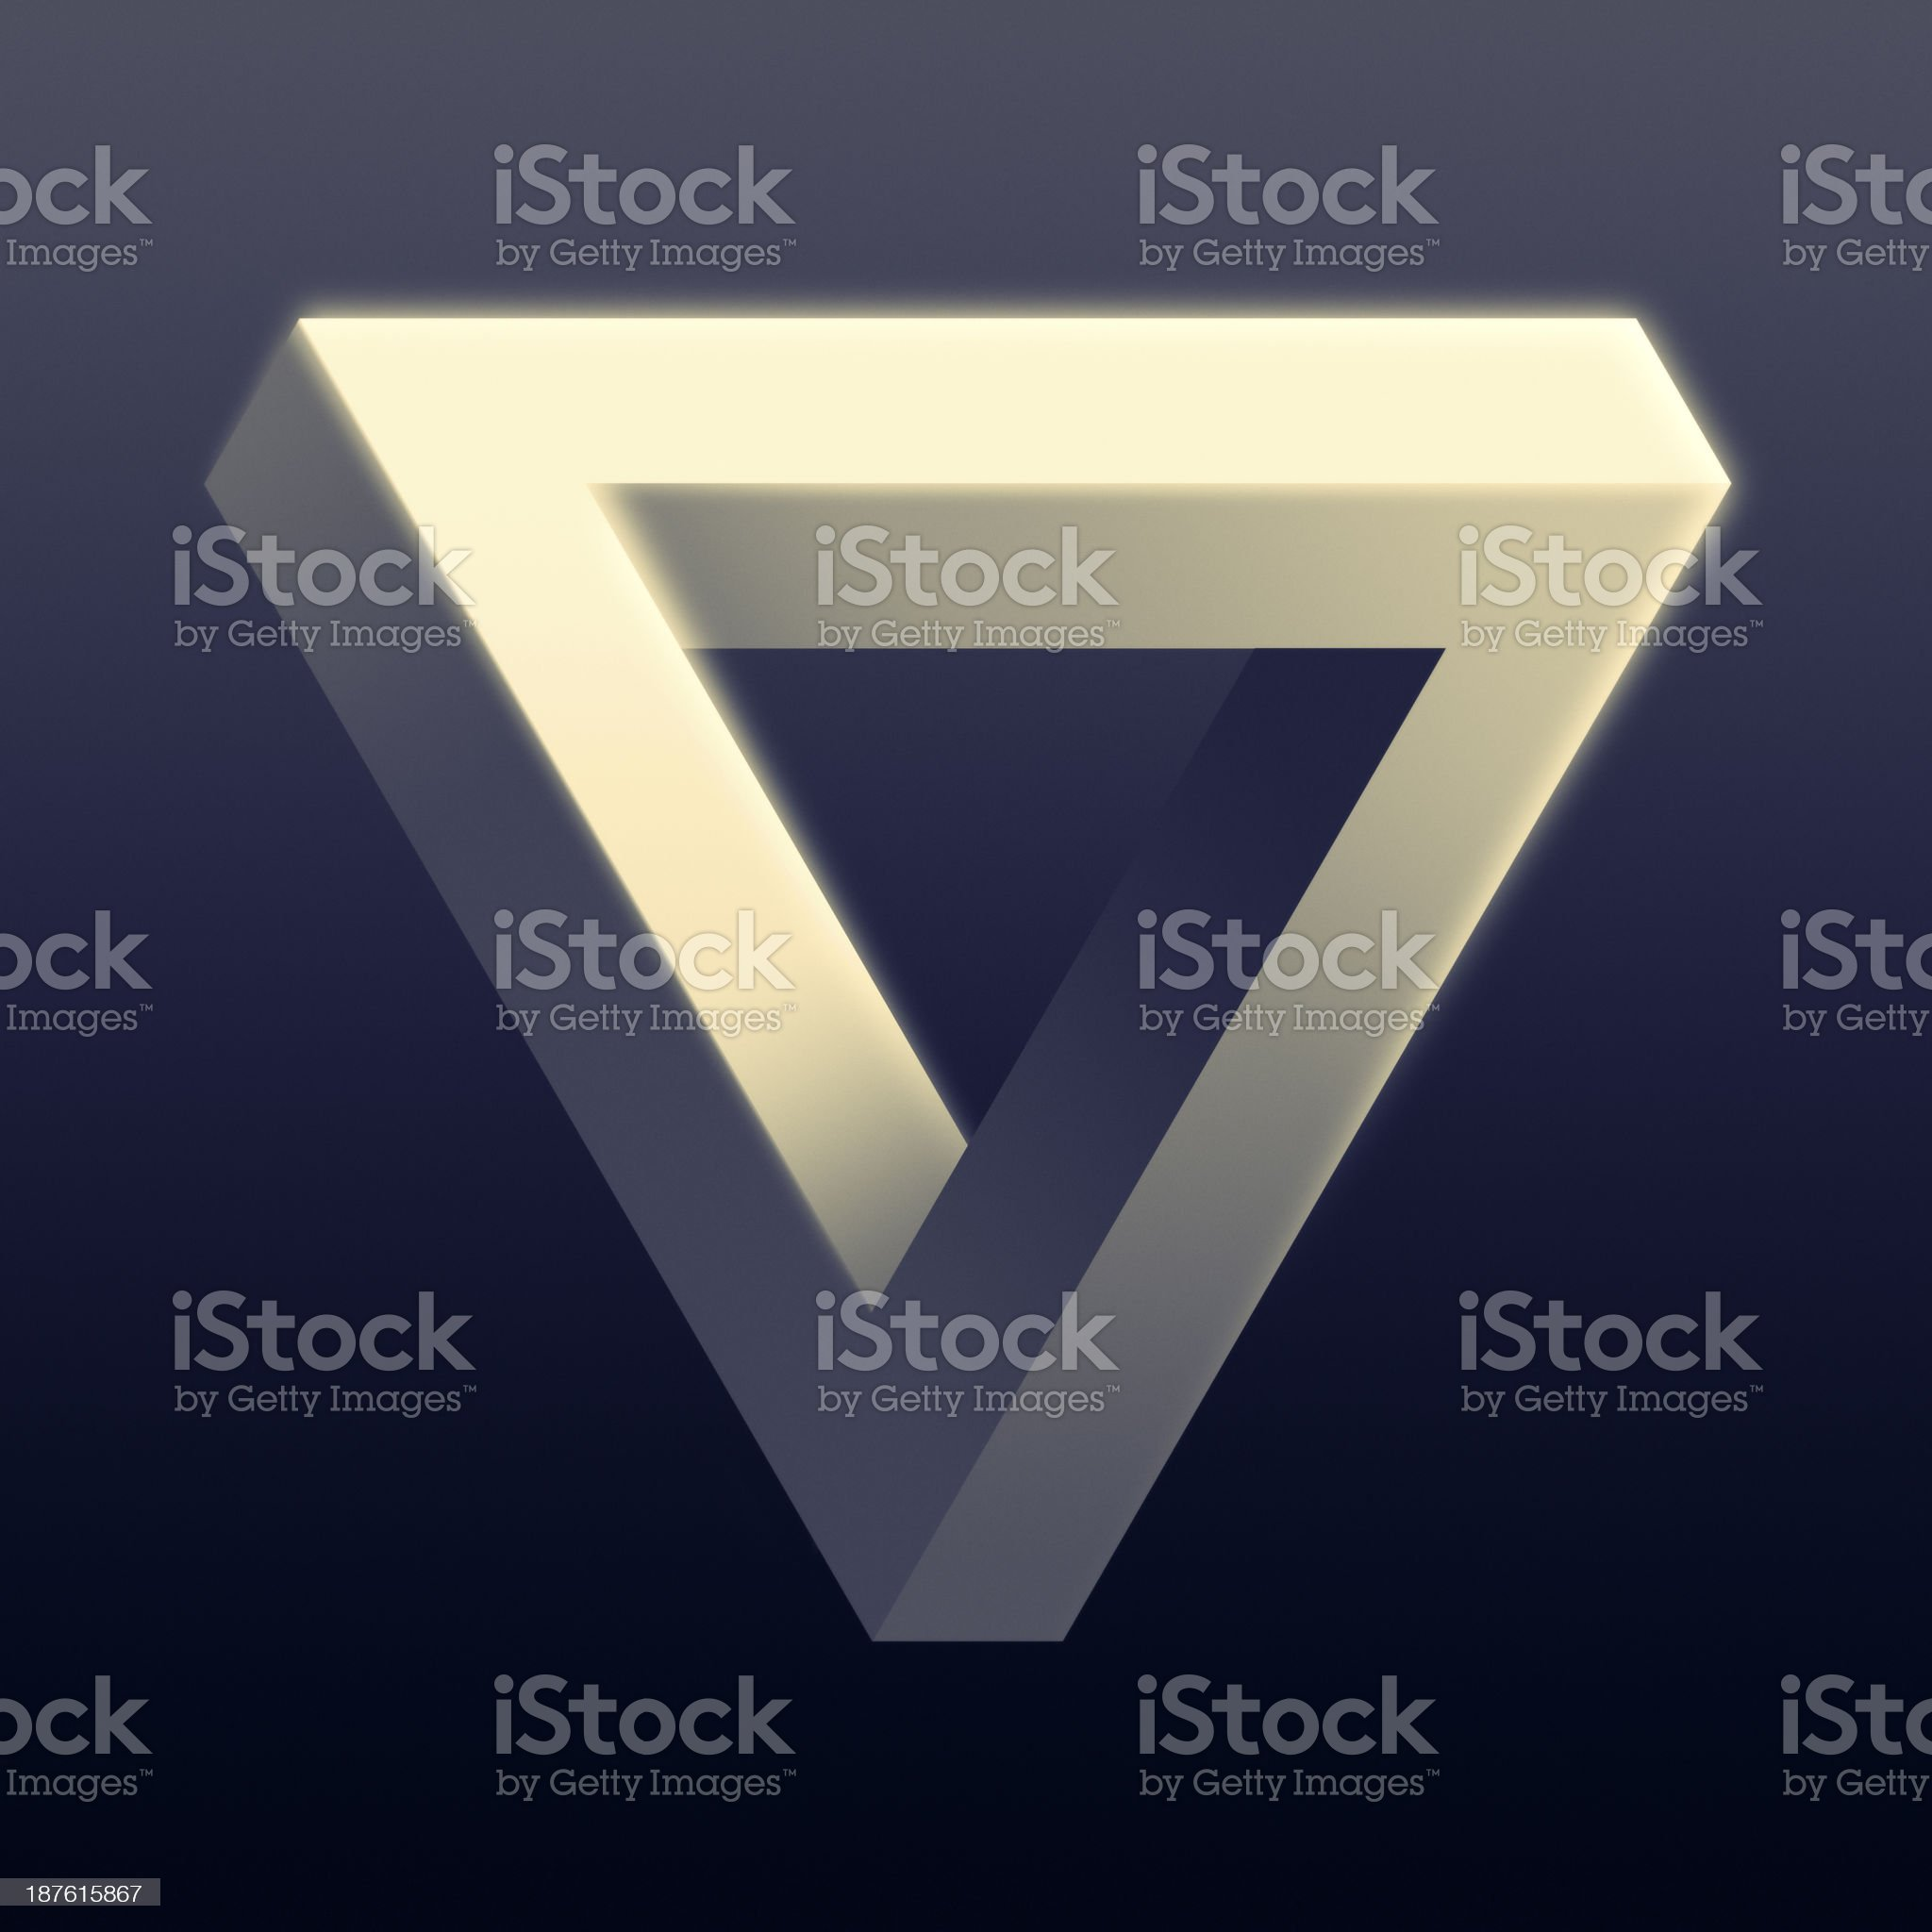 Impossible Triangle Illusion royalty-free stock photo